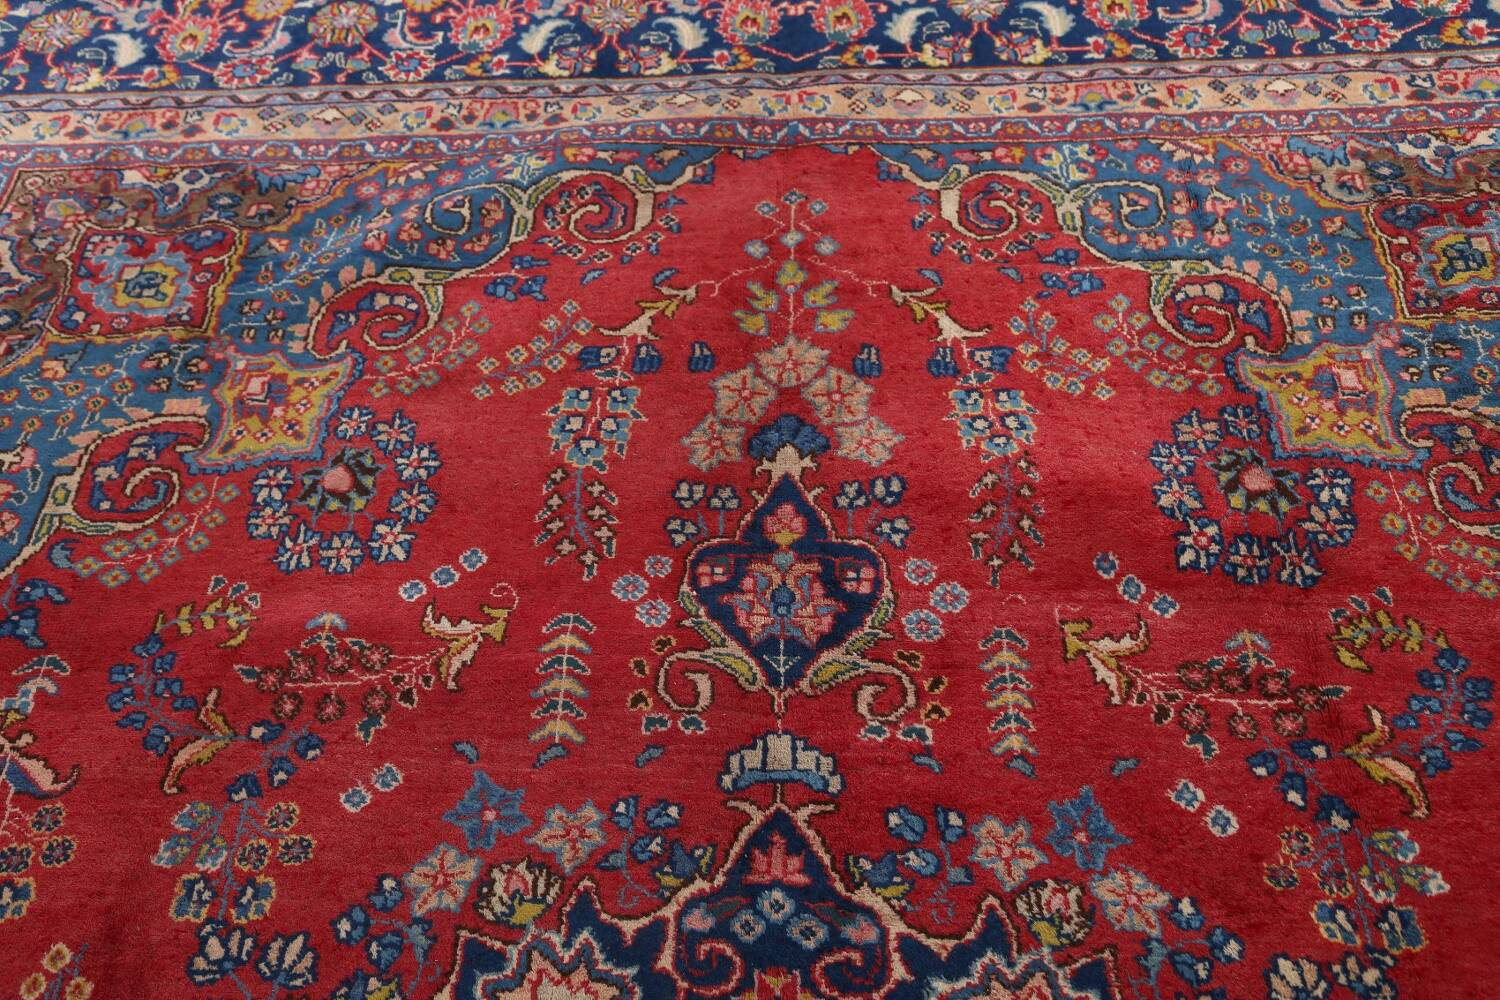 Vintage Floral Red Mashad Persian Area Rug 9x13 image 15